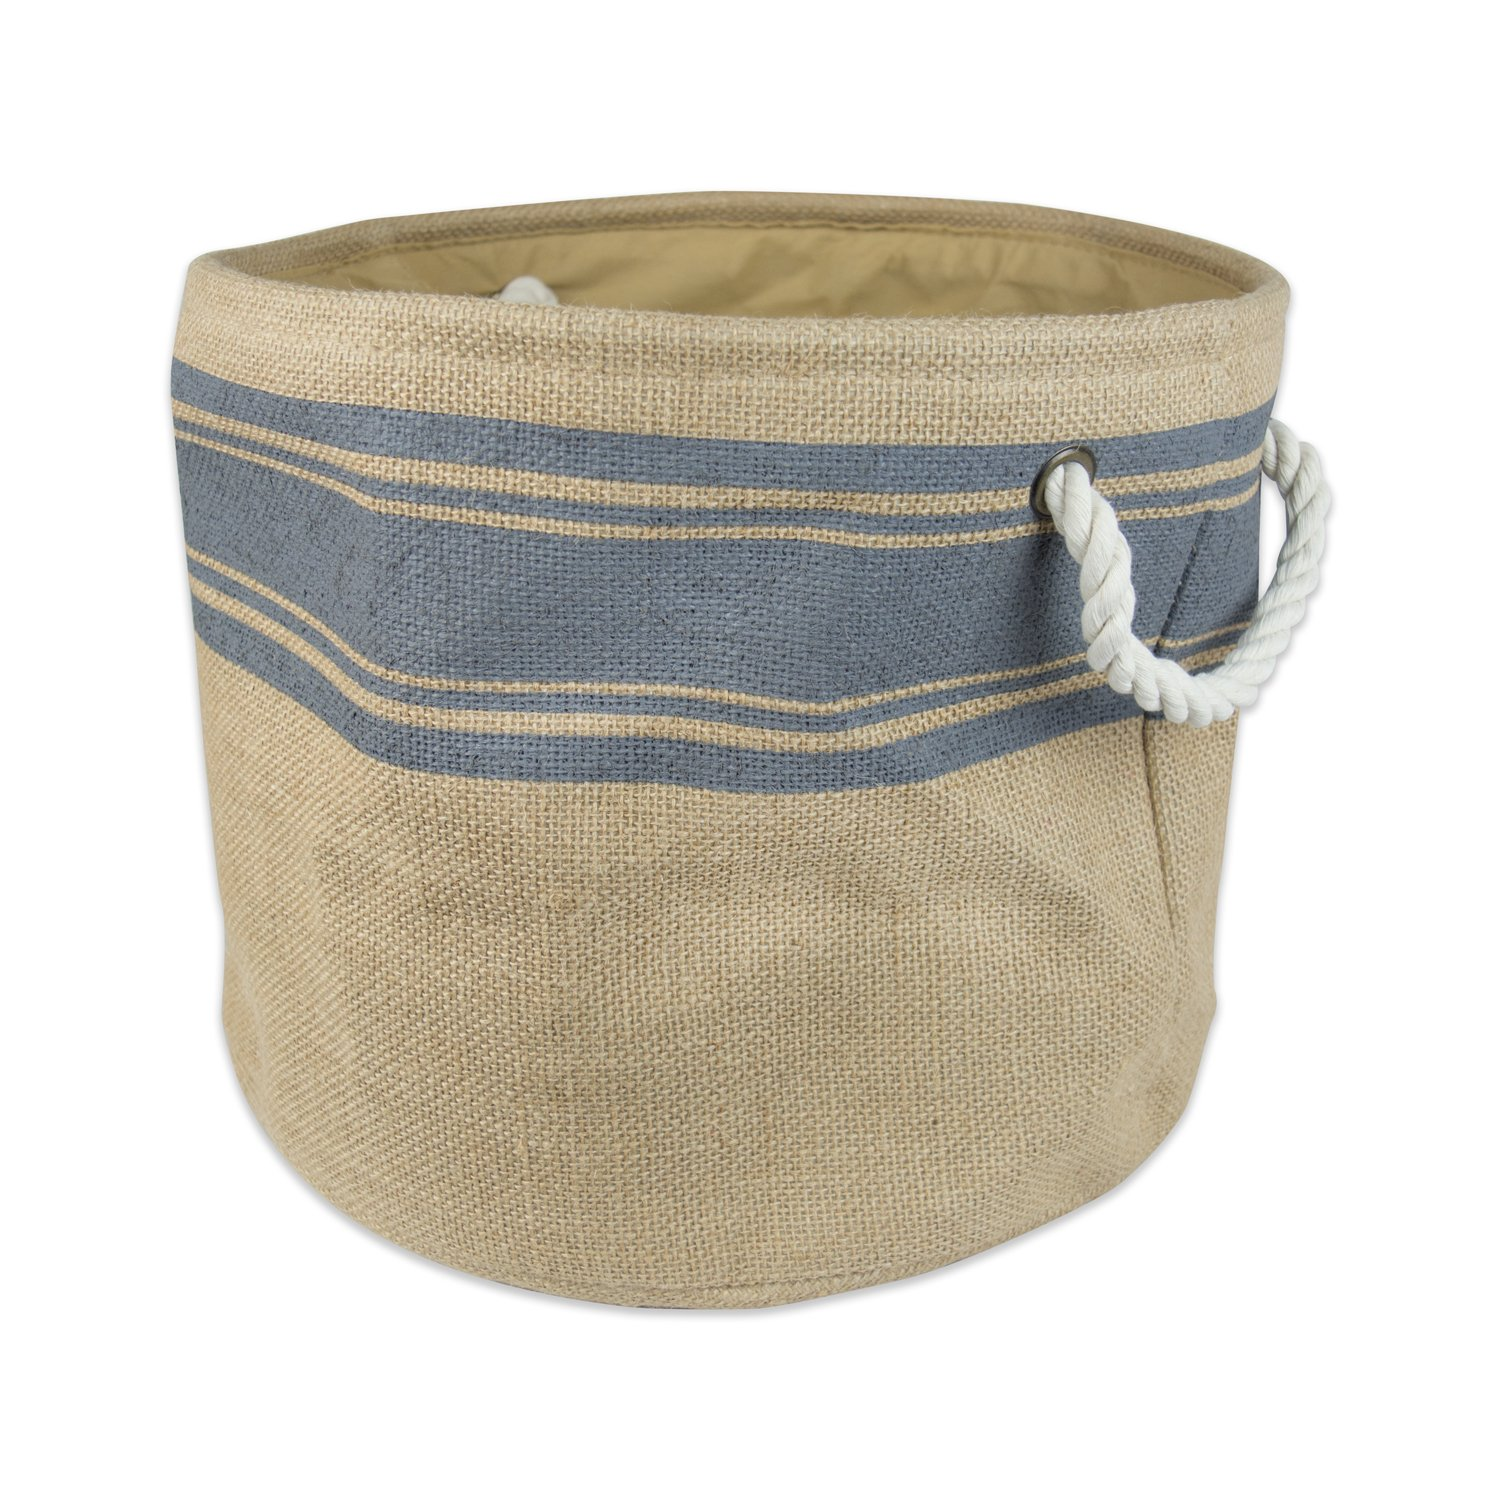 "DII Collapsible Burlap Storage Basket or Bin with Durable Cotton Handles, Home Organizational Solution for Office, Bedroom, Closet, Toys, Laundry (Large Round – 16x15""), Grey Border"